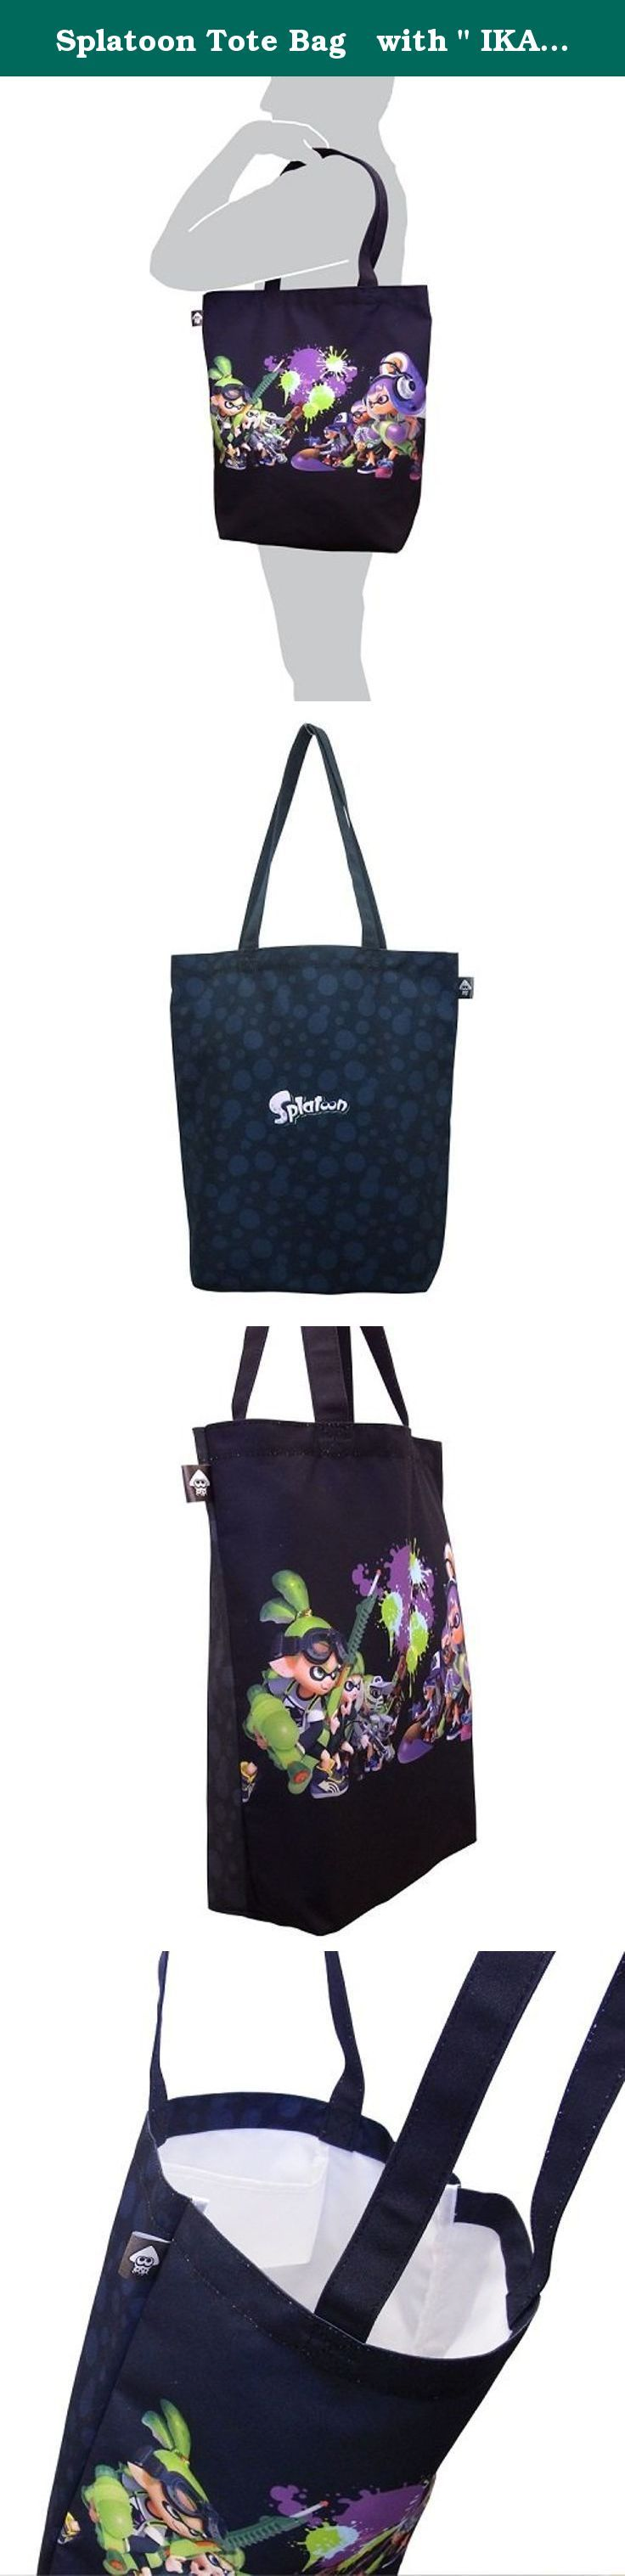 """Splatoon Tote Bag with """" IKASU Can Badges """" Boy & Girl. Wii U exclusive software """"Splatoon"""", a tote bag with IKASU can badge appears! A full print is big impact!, And it can store A4 size. Further, 2 POP cans badges also attached!."""